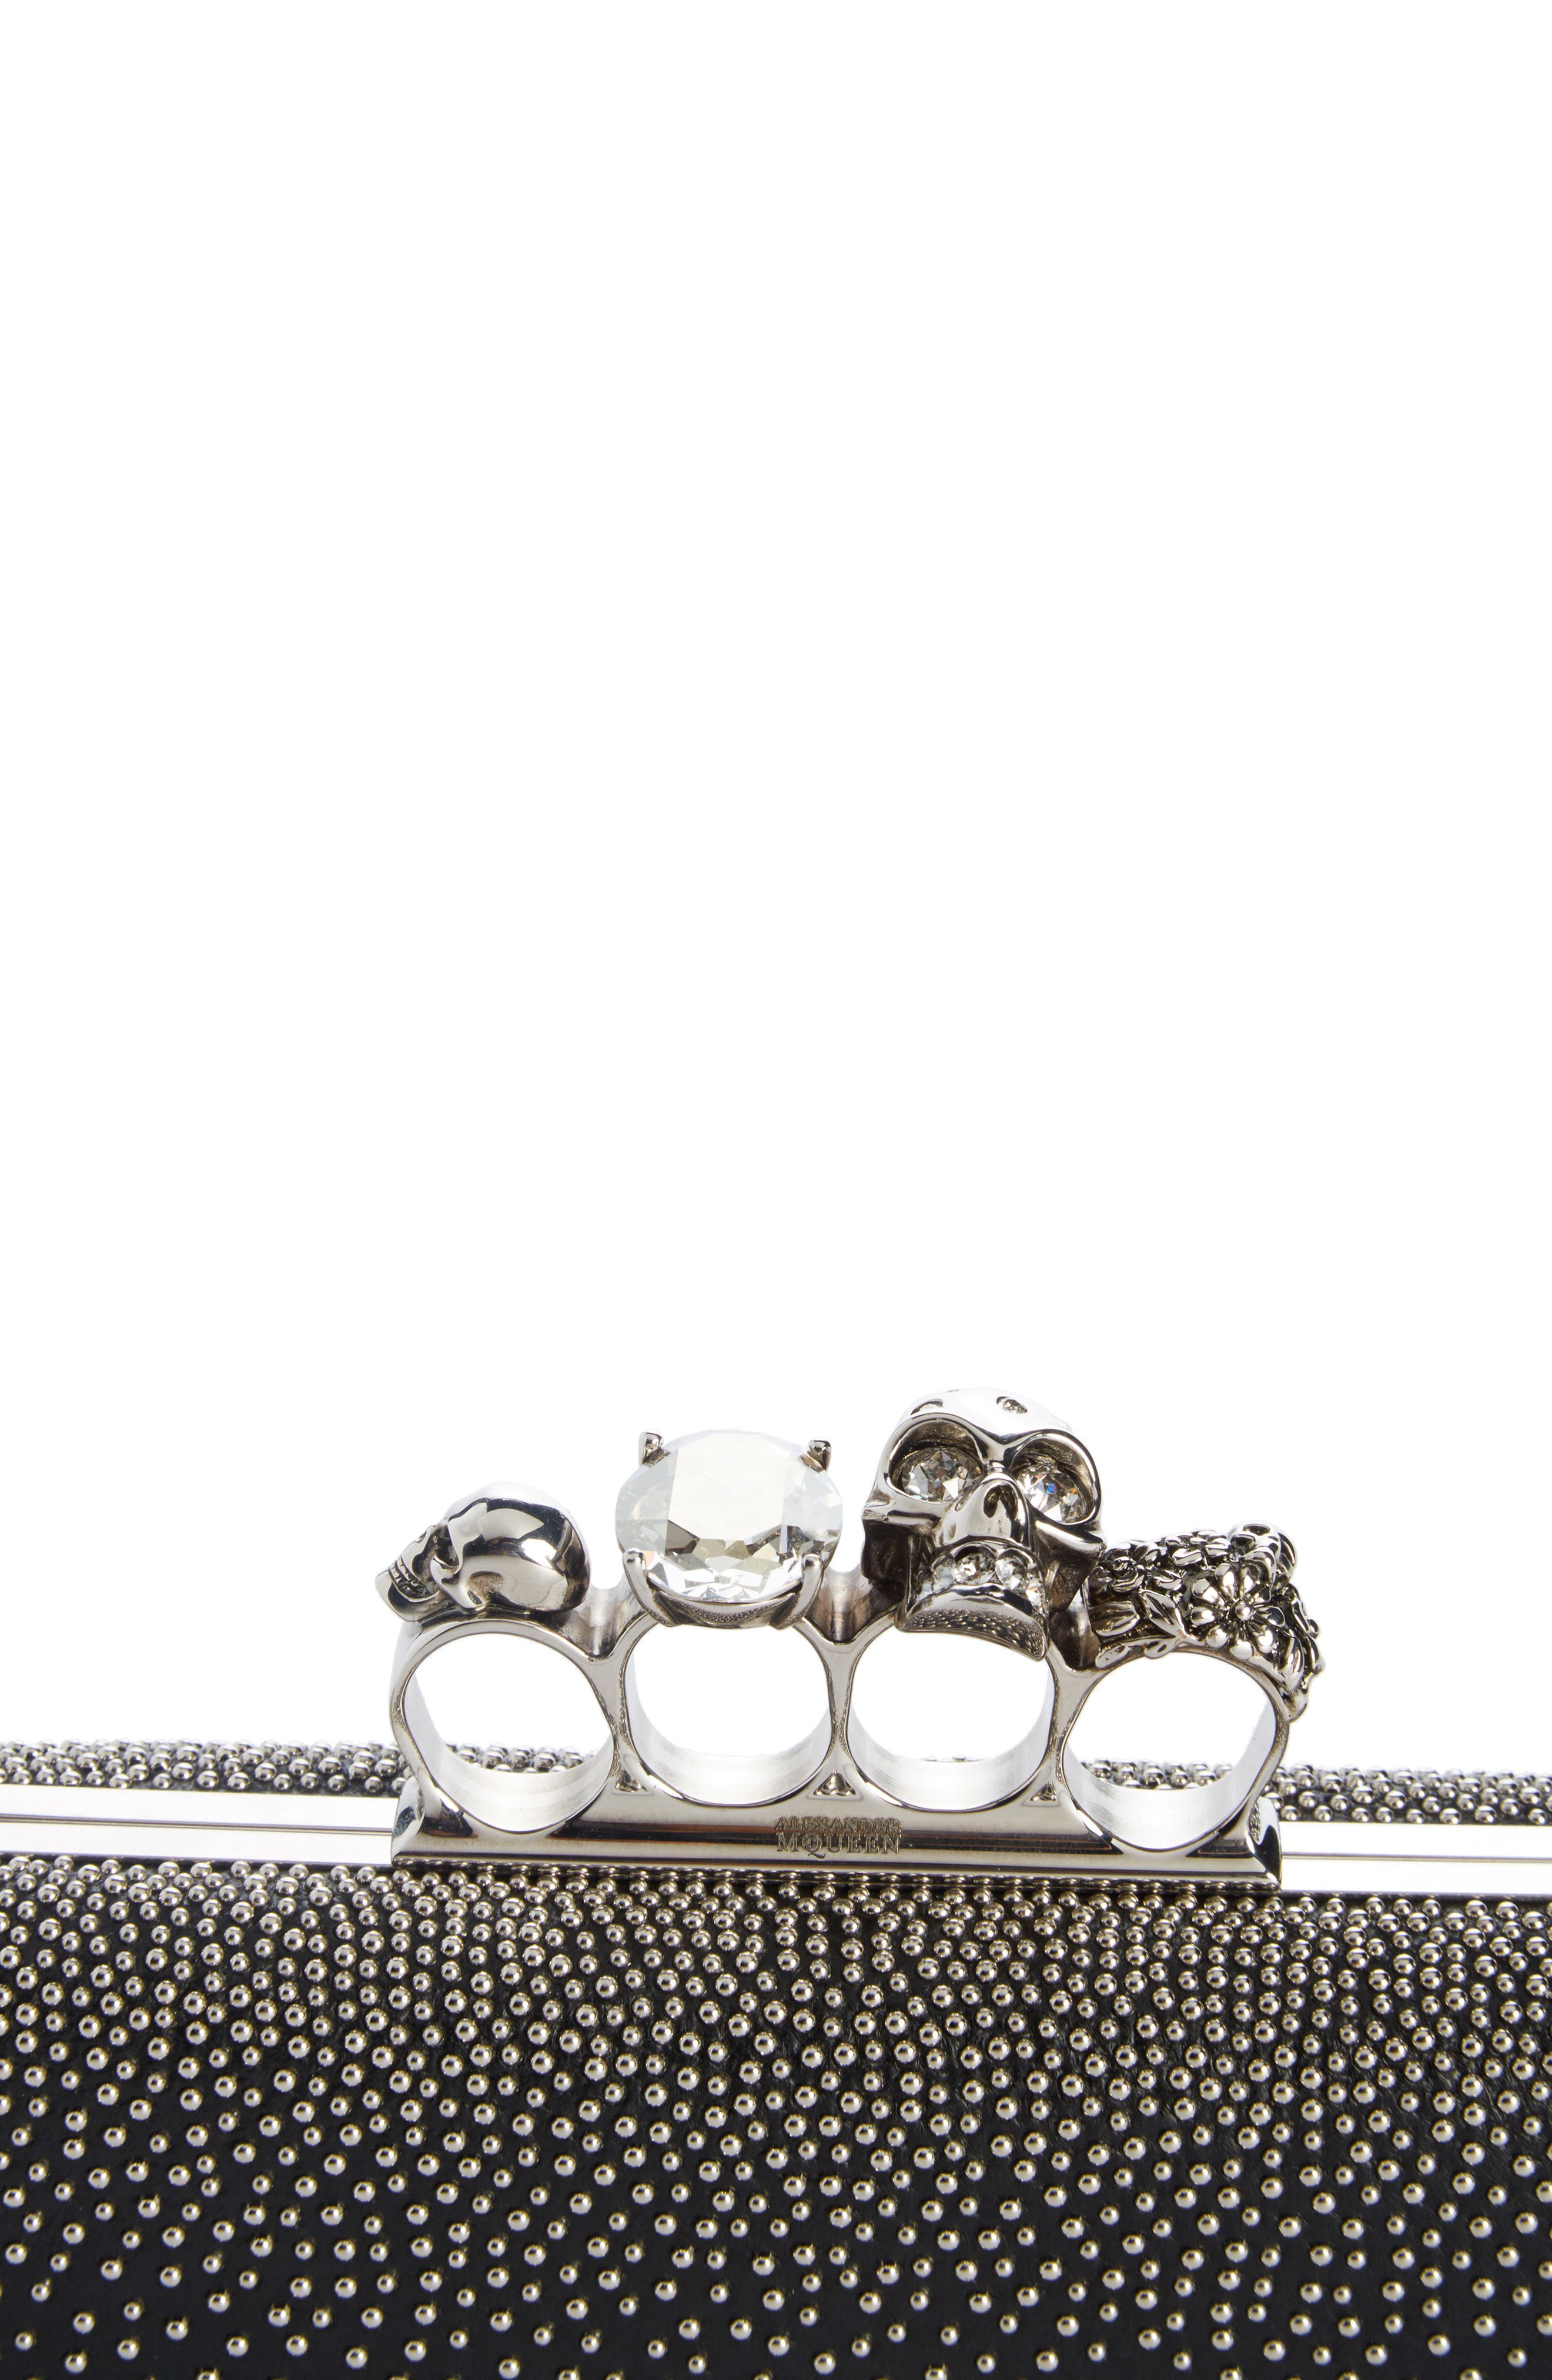 Studded Lambskin Leather Knuckle Clutch,                             Alternate thumbnail 4, color,                             BLACK